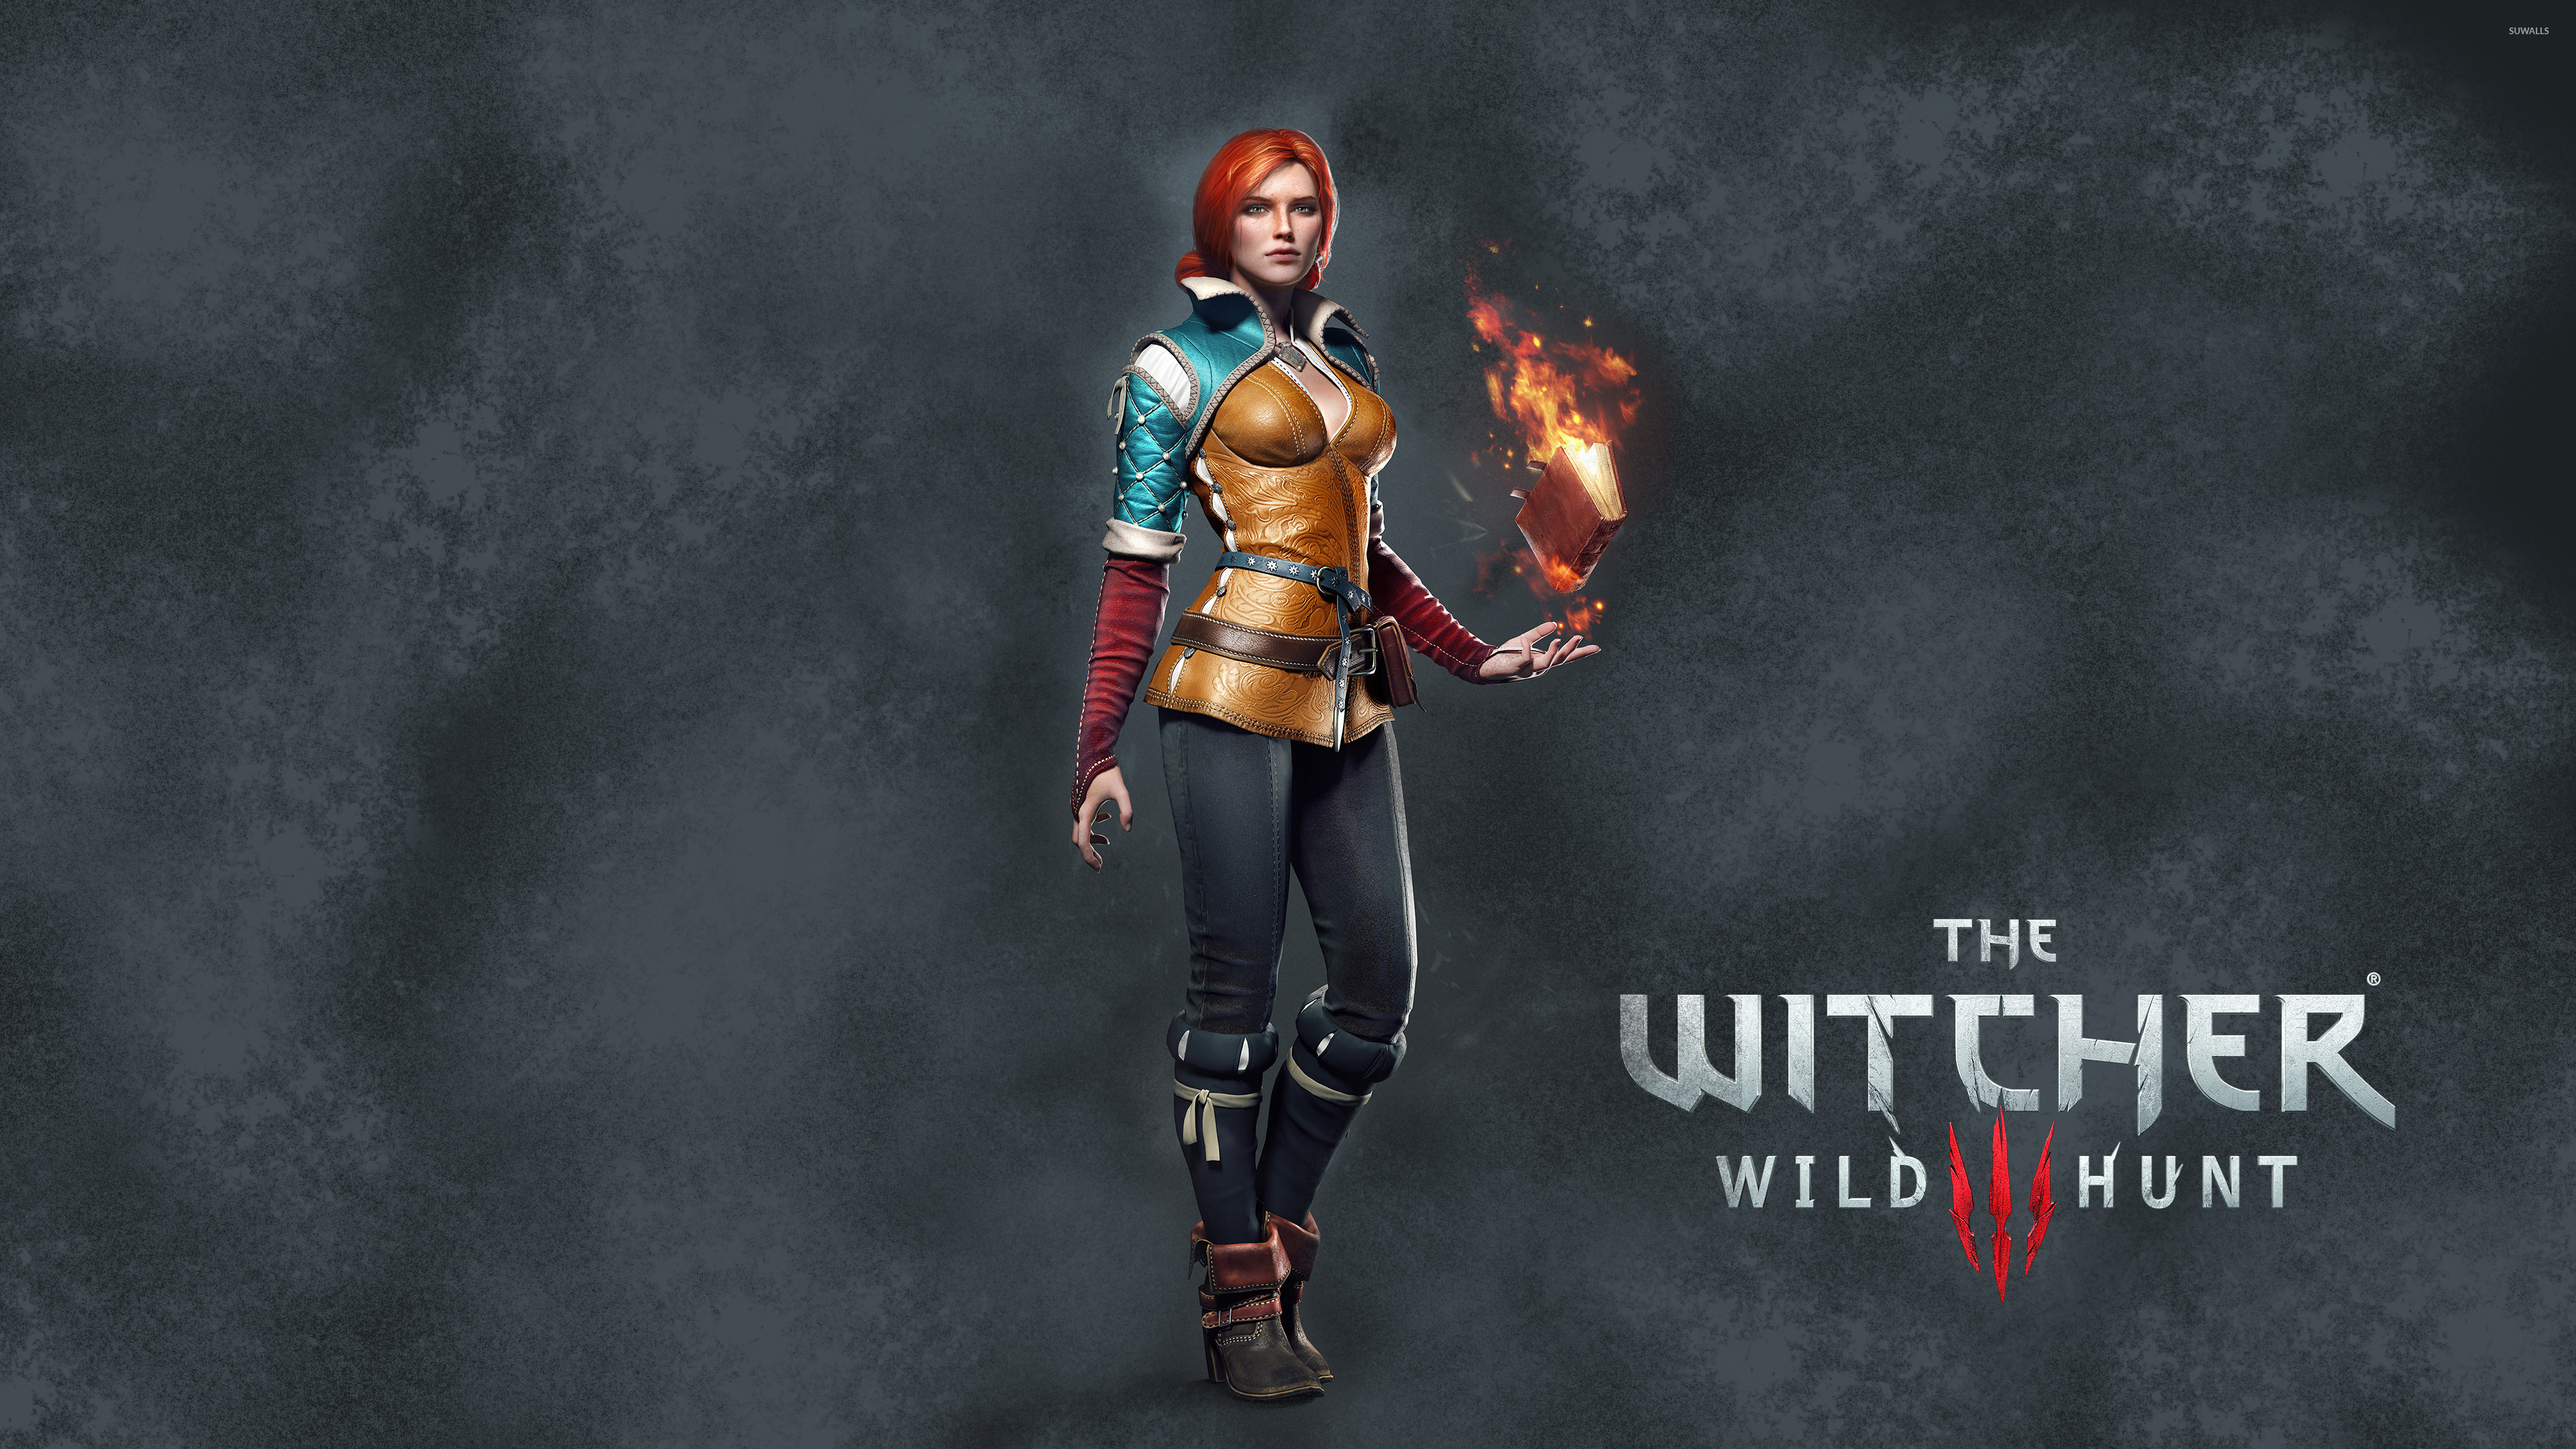 Res: 3840x2160, Triss Merigold with a book - The Witcher 3: Wild Hunt wallpaper